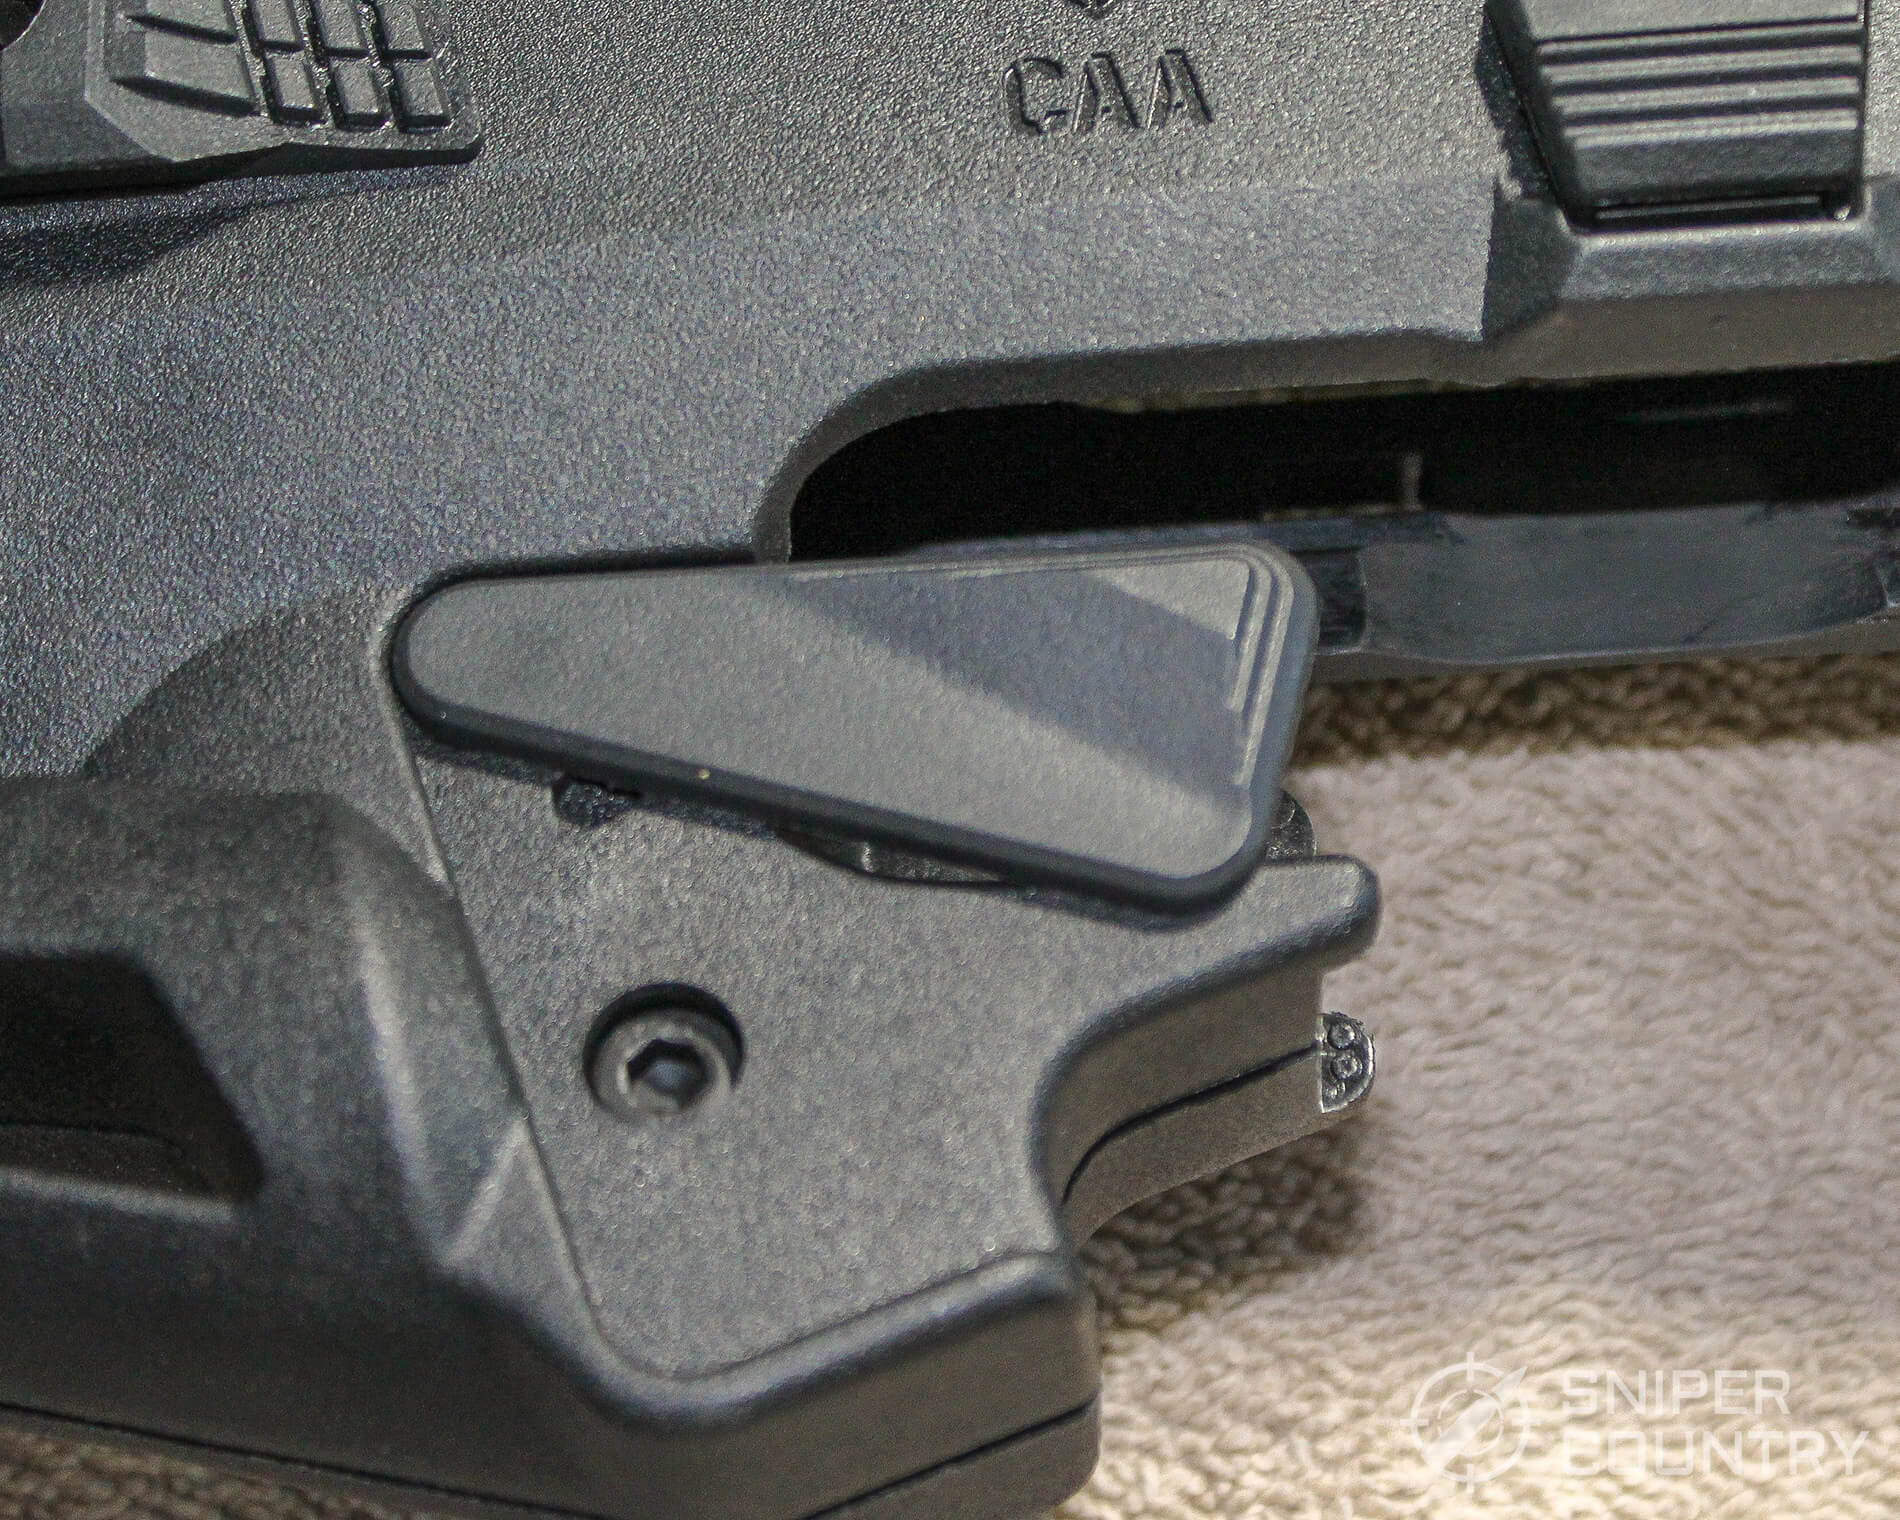 CAA Micro-RONI trigger guard safety